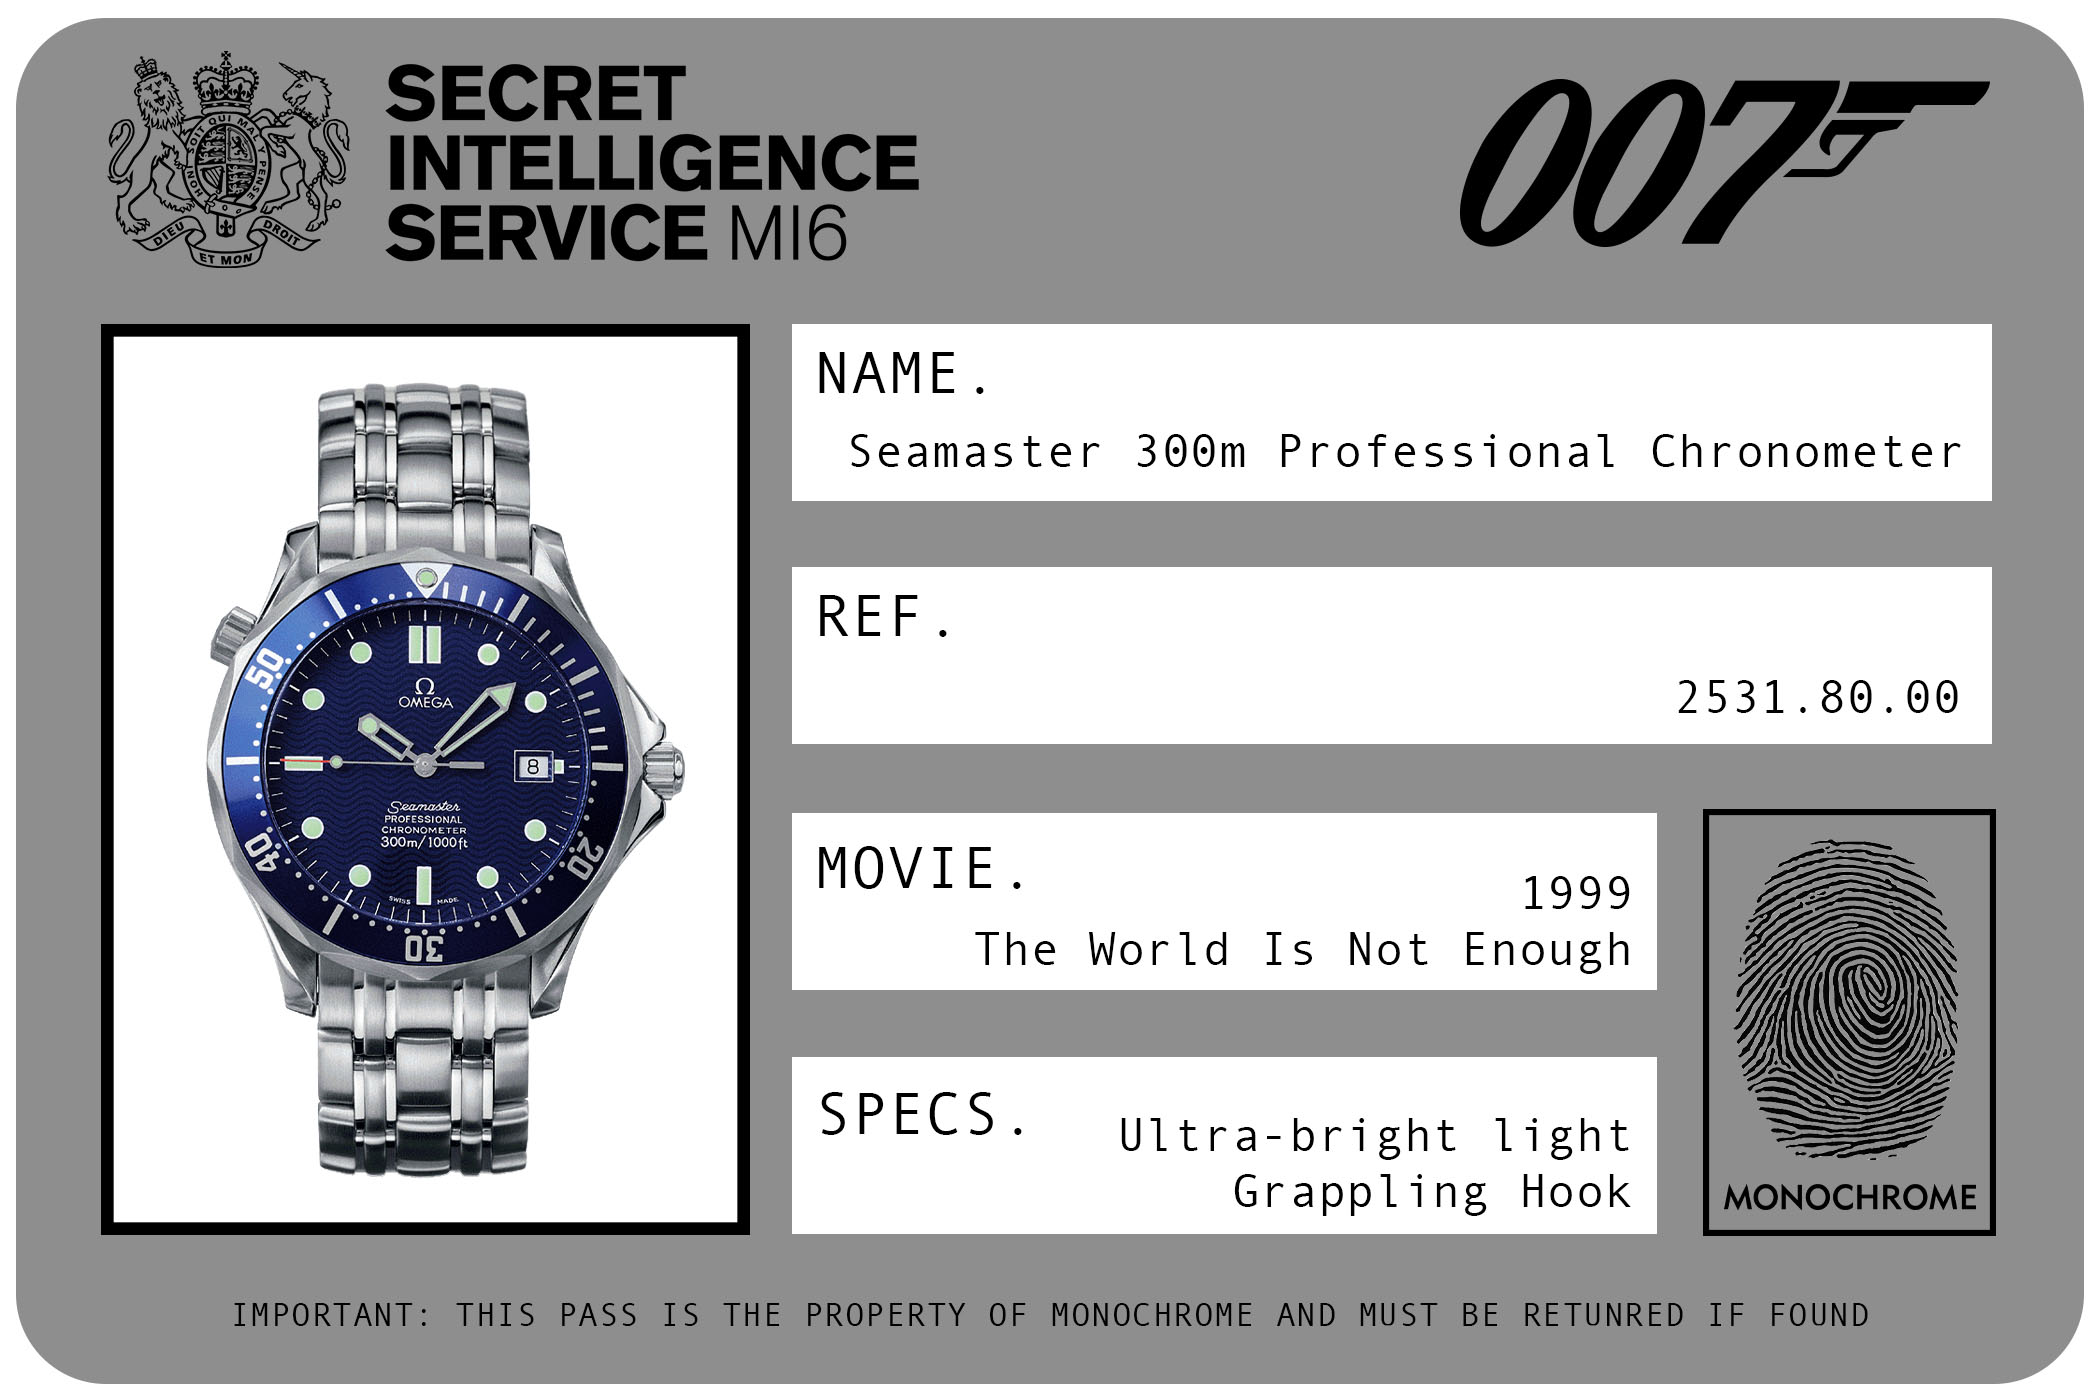 1999 - Omega Seamaster 300m Professional Chronometer Automatic 2521.80.00 James Bond The World Is Not Enough ID Card